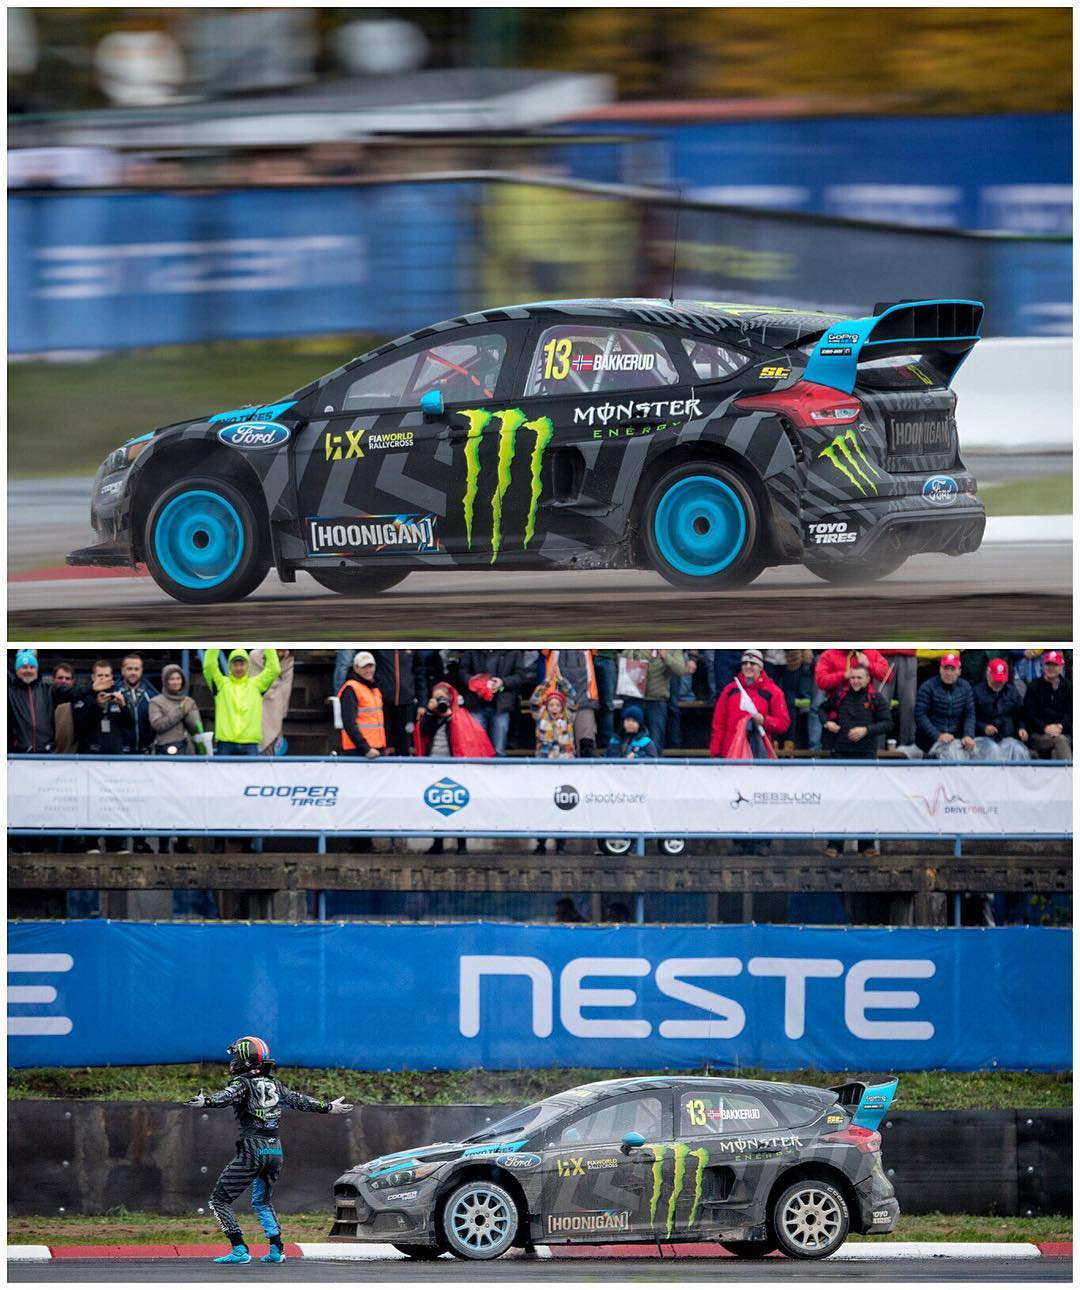 P4 for my Hoonigan Racing teammate @AndreasBakkerud here at #LatviaRX! Great drive from him in these treacherous rainy/slippery conditions. This makes the @FIAWorldRX title chase very interesting - there are only 9 points separating 2nd, 3rd, and 4th...